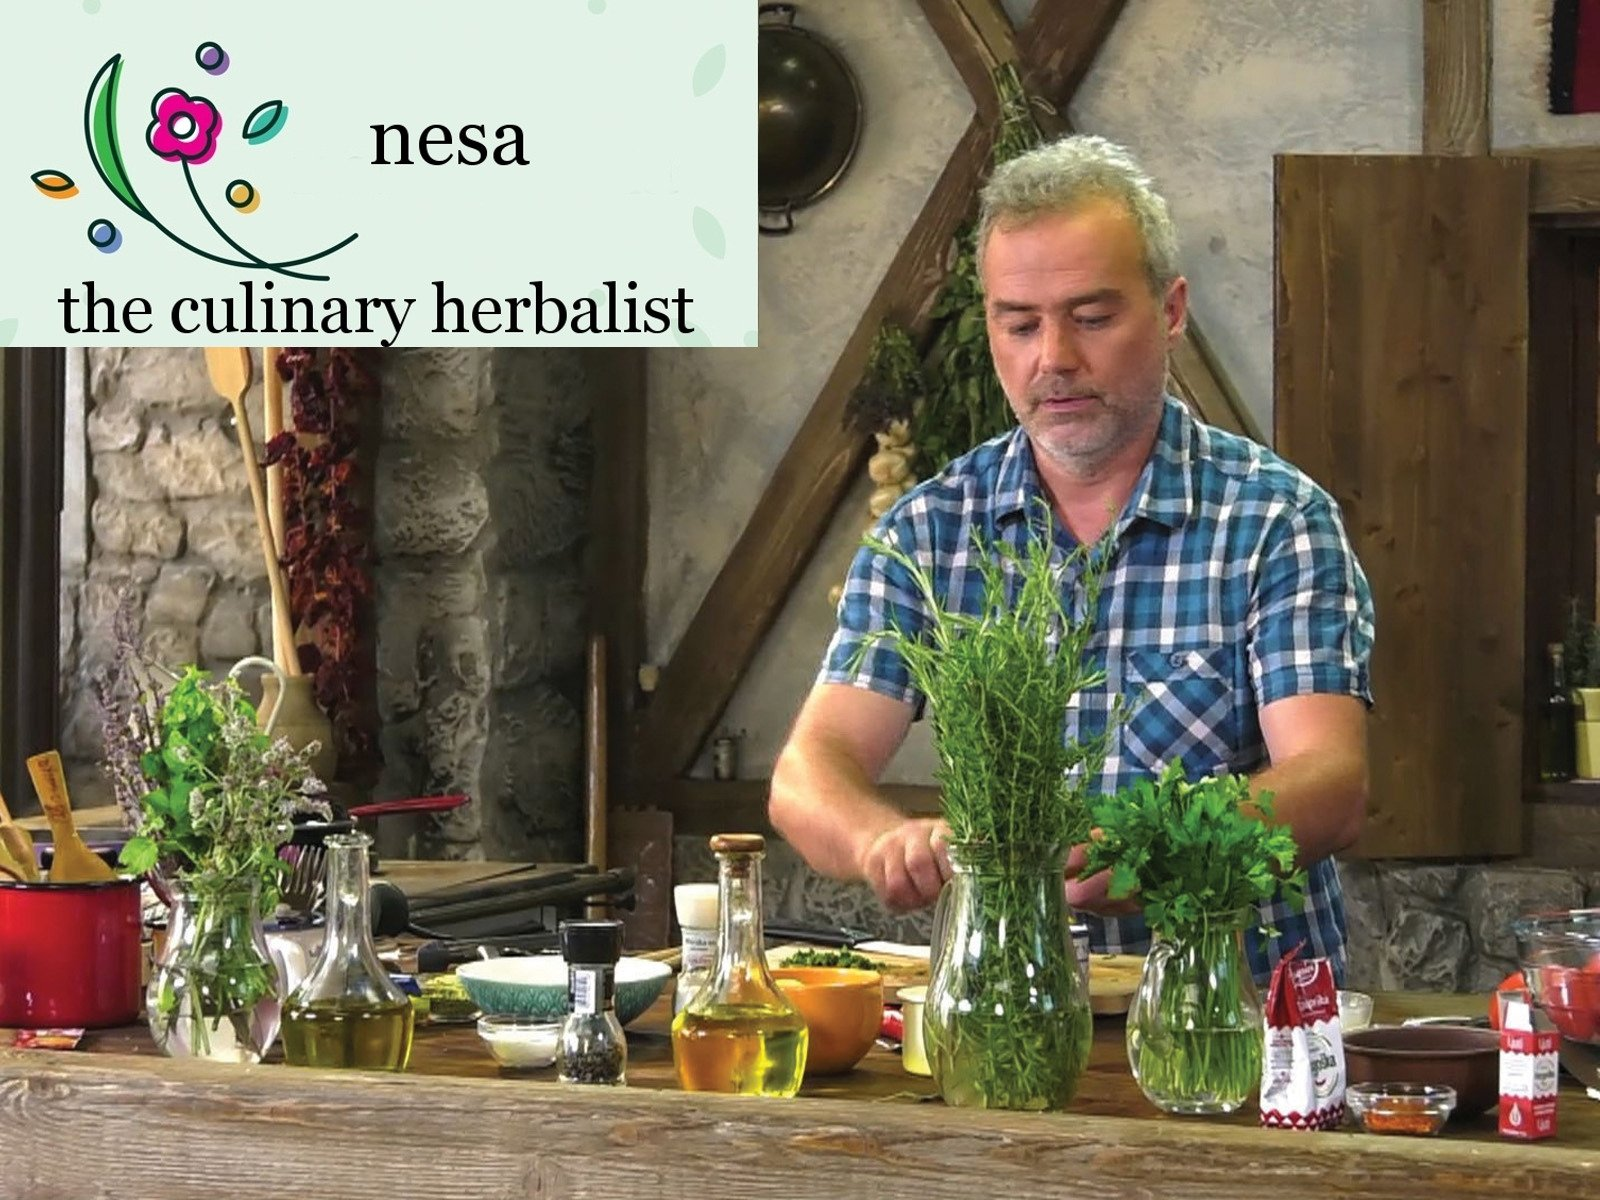 Nesa The Culinary Herbalist - Season 1